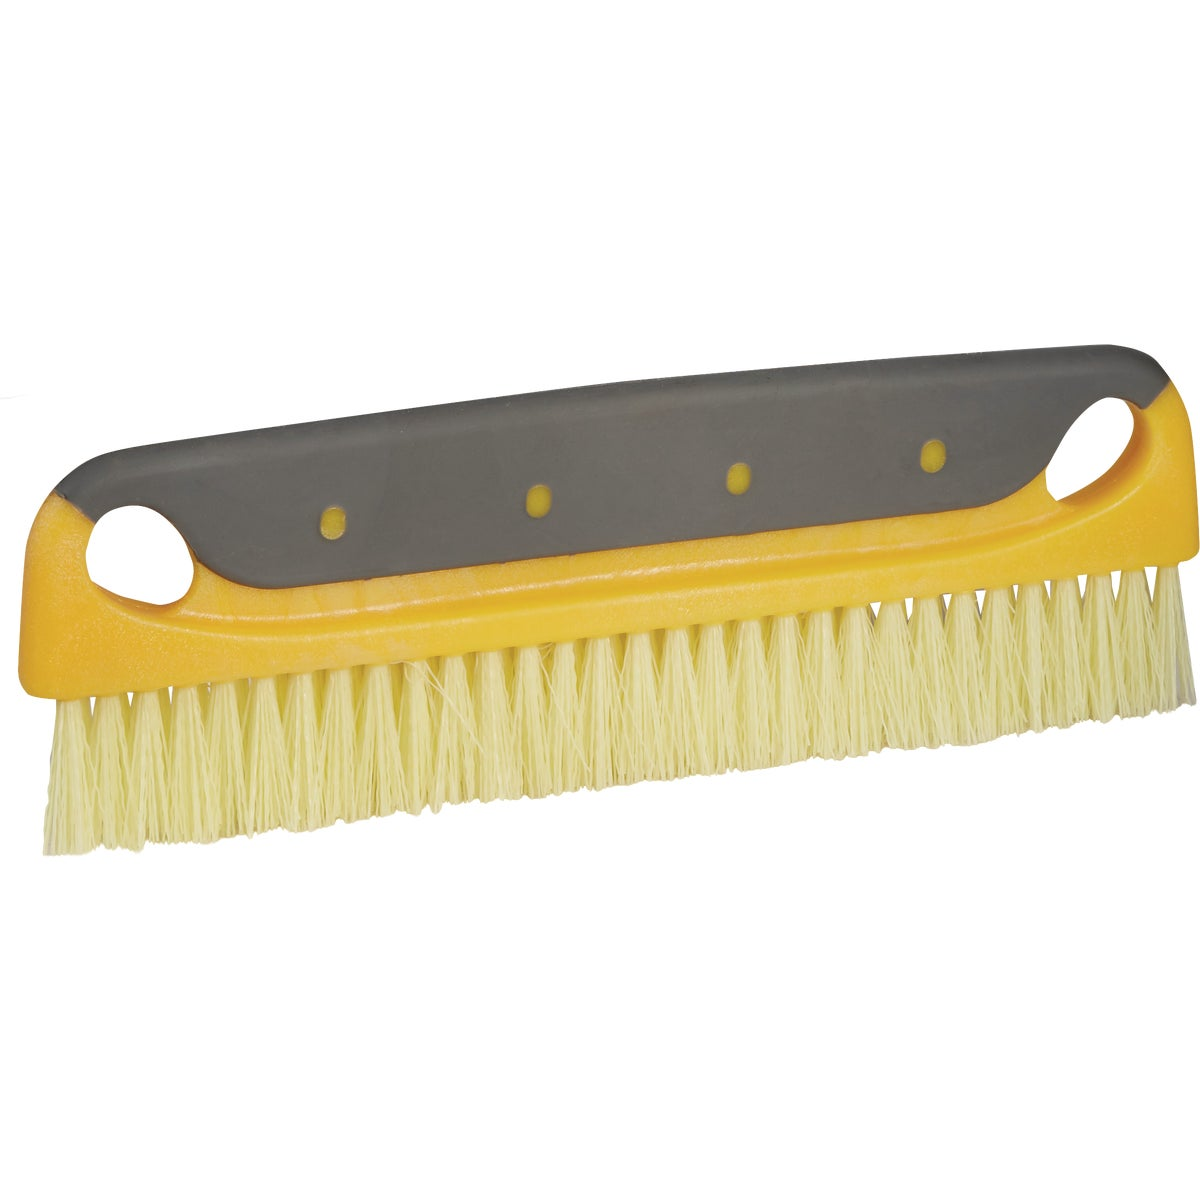 PAPER HANGING BRUSH - 3374 by Warner Mfg Co